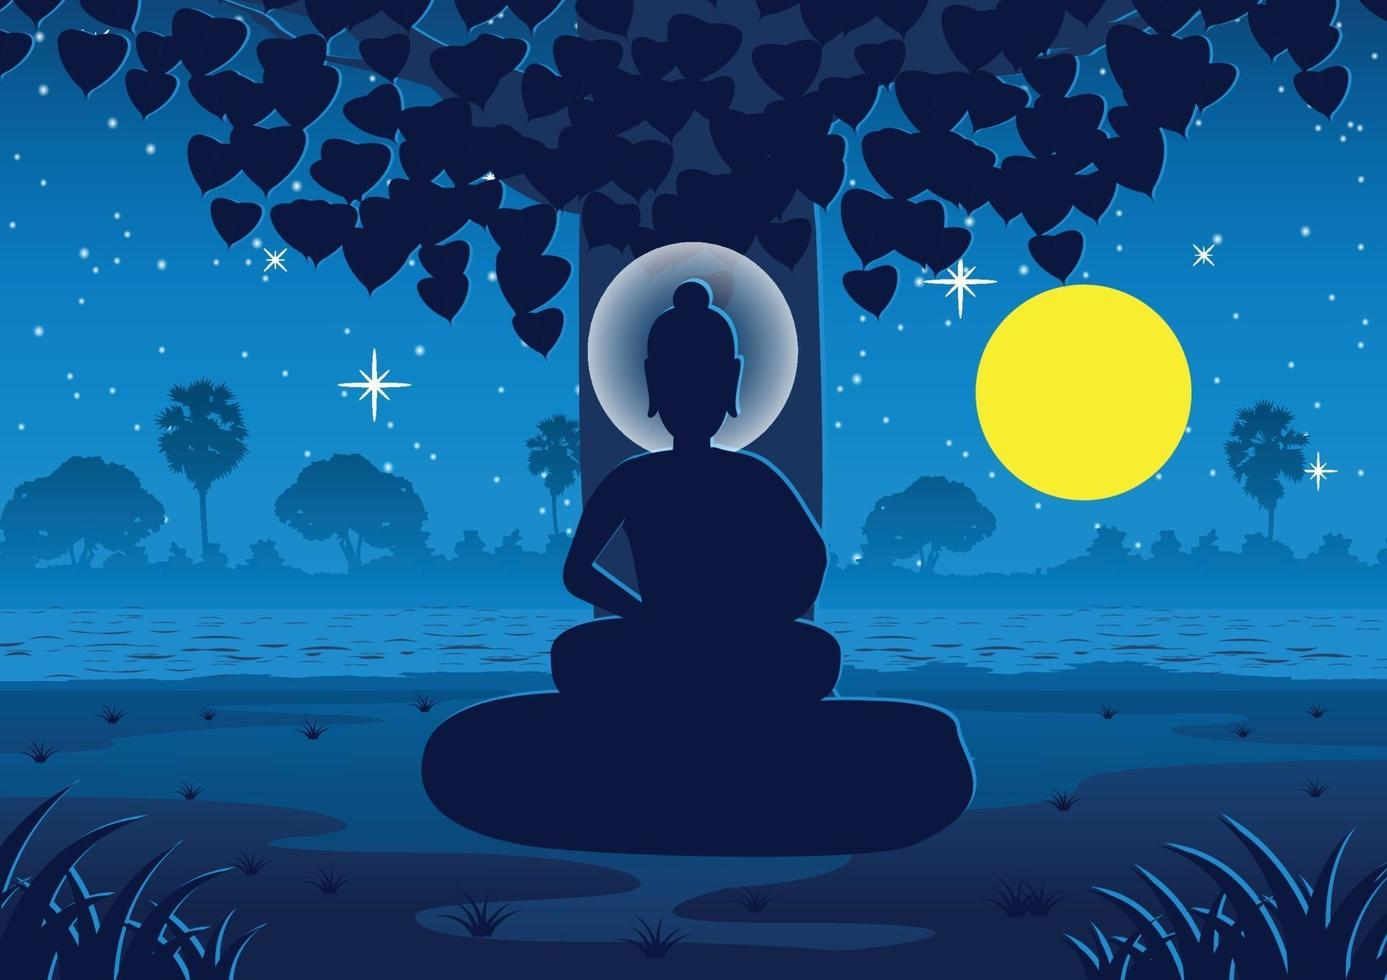 lord of Buddha becomes enlightened under tree on Full moon night near river in India vector